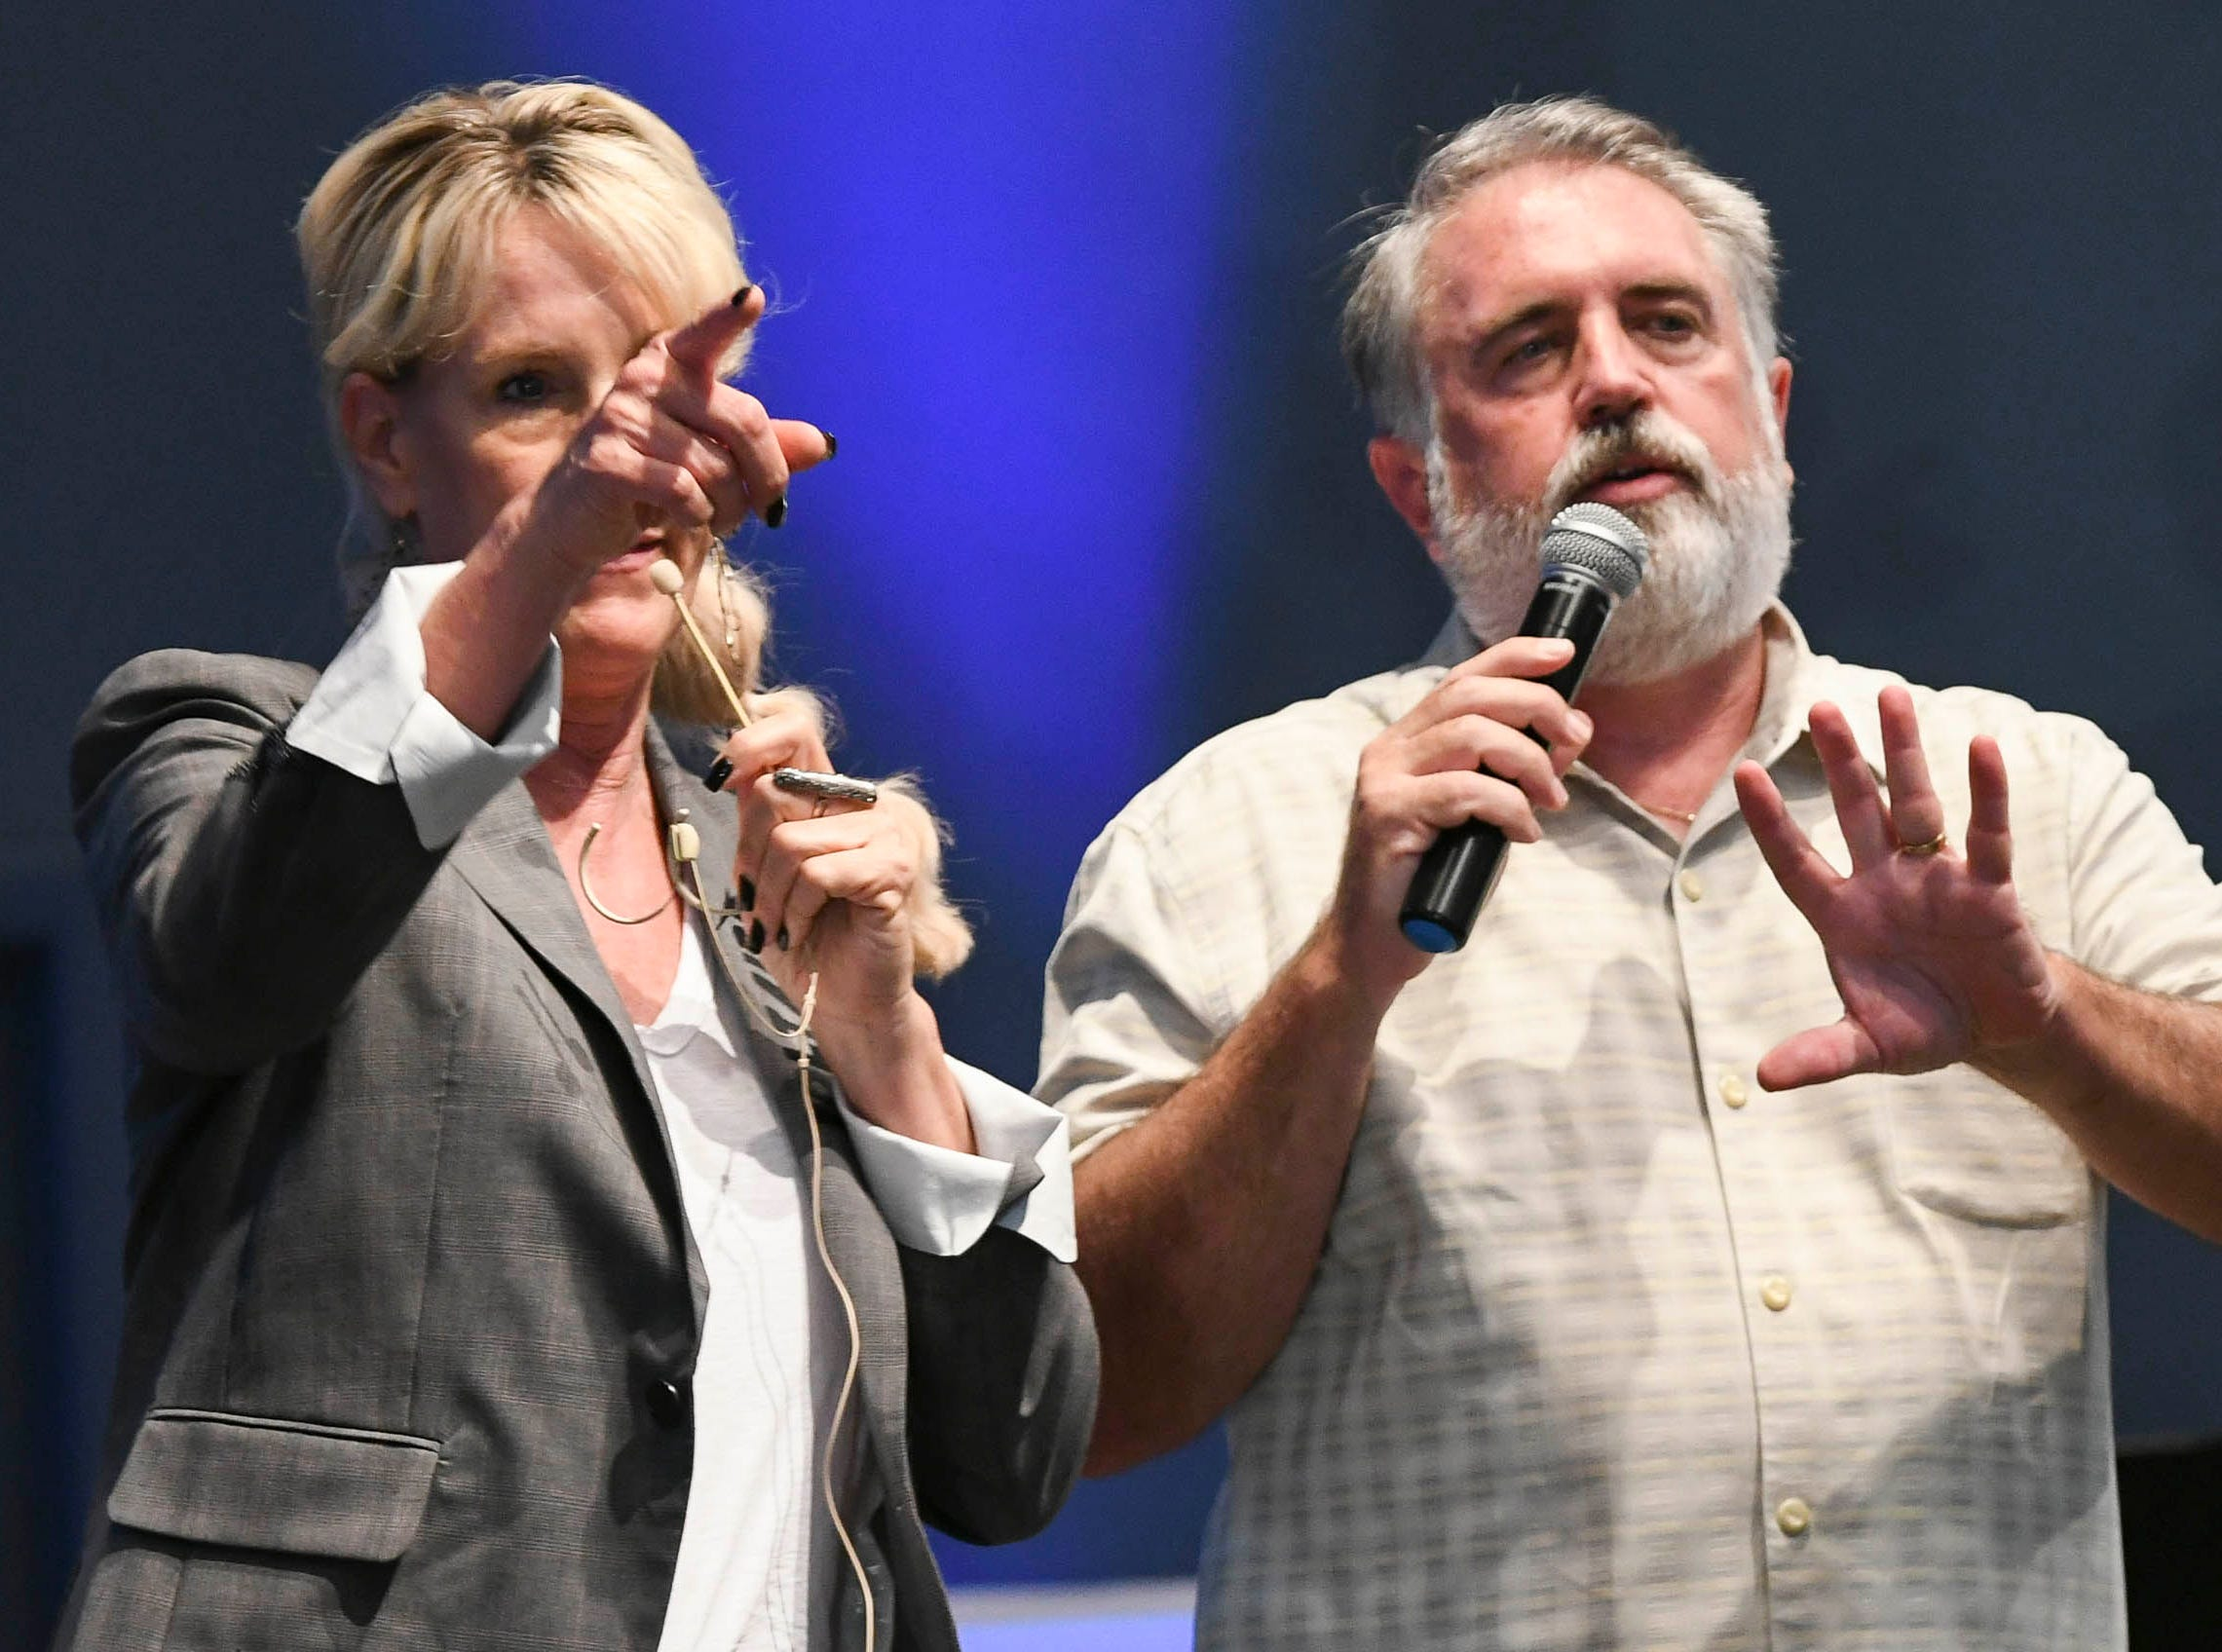 Environmental activist Erin Brockovich and her associate Bob Bowcock talk to Satellite Beach and other residents during a town hall at Kingdom Gate Worship Center.